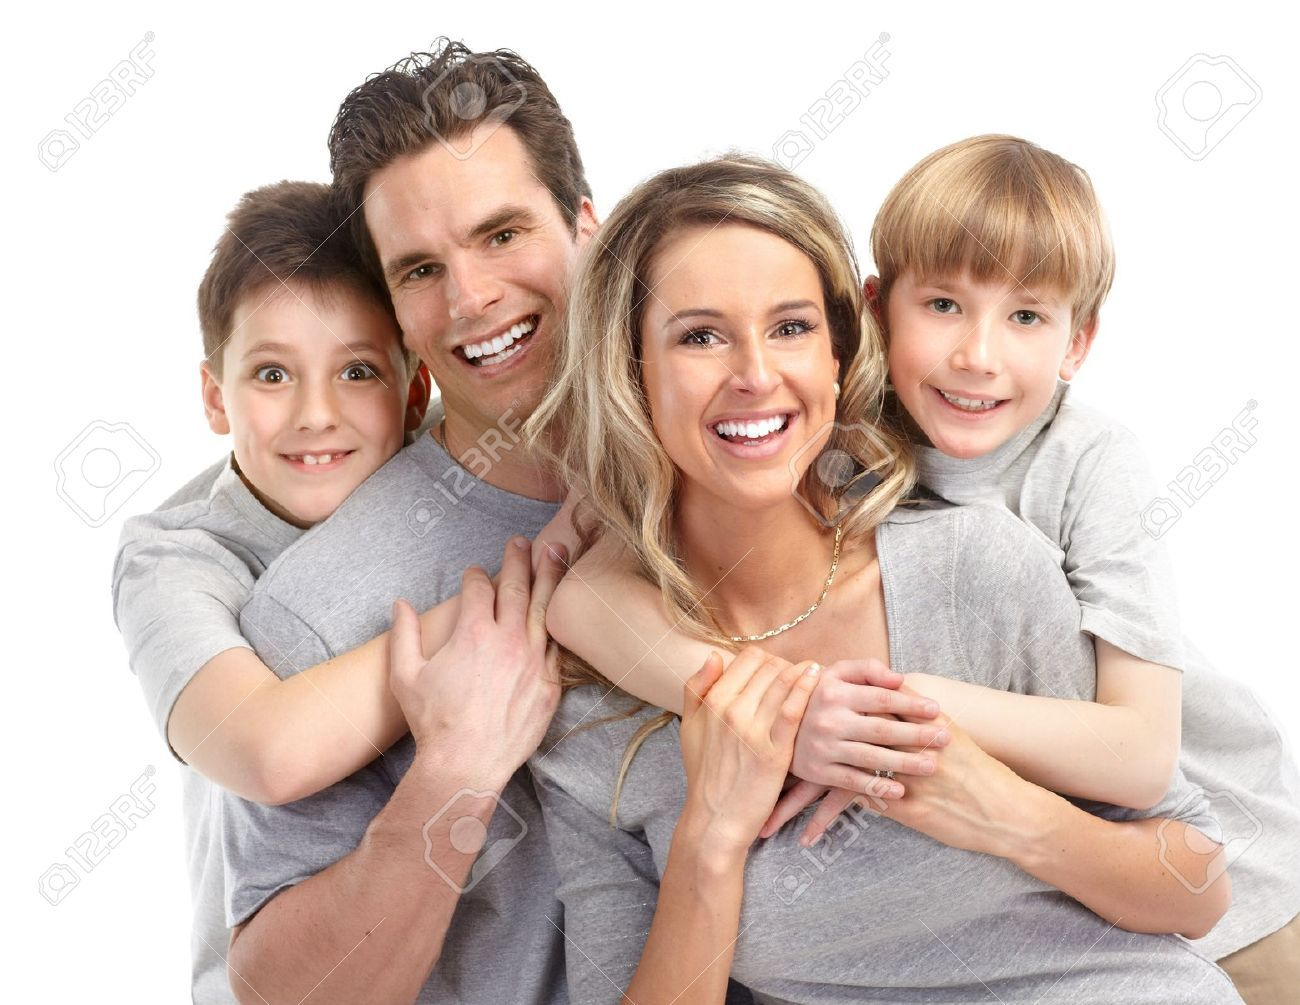 Image result for family pictures white background Family